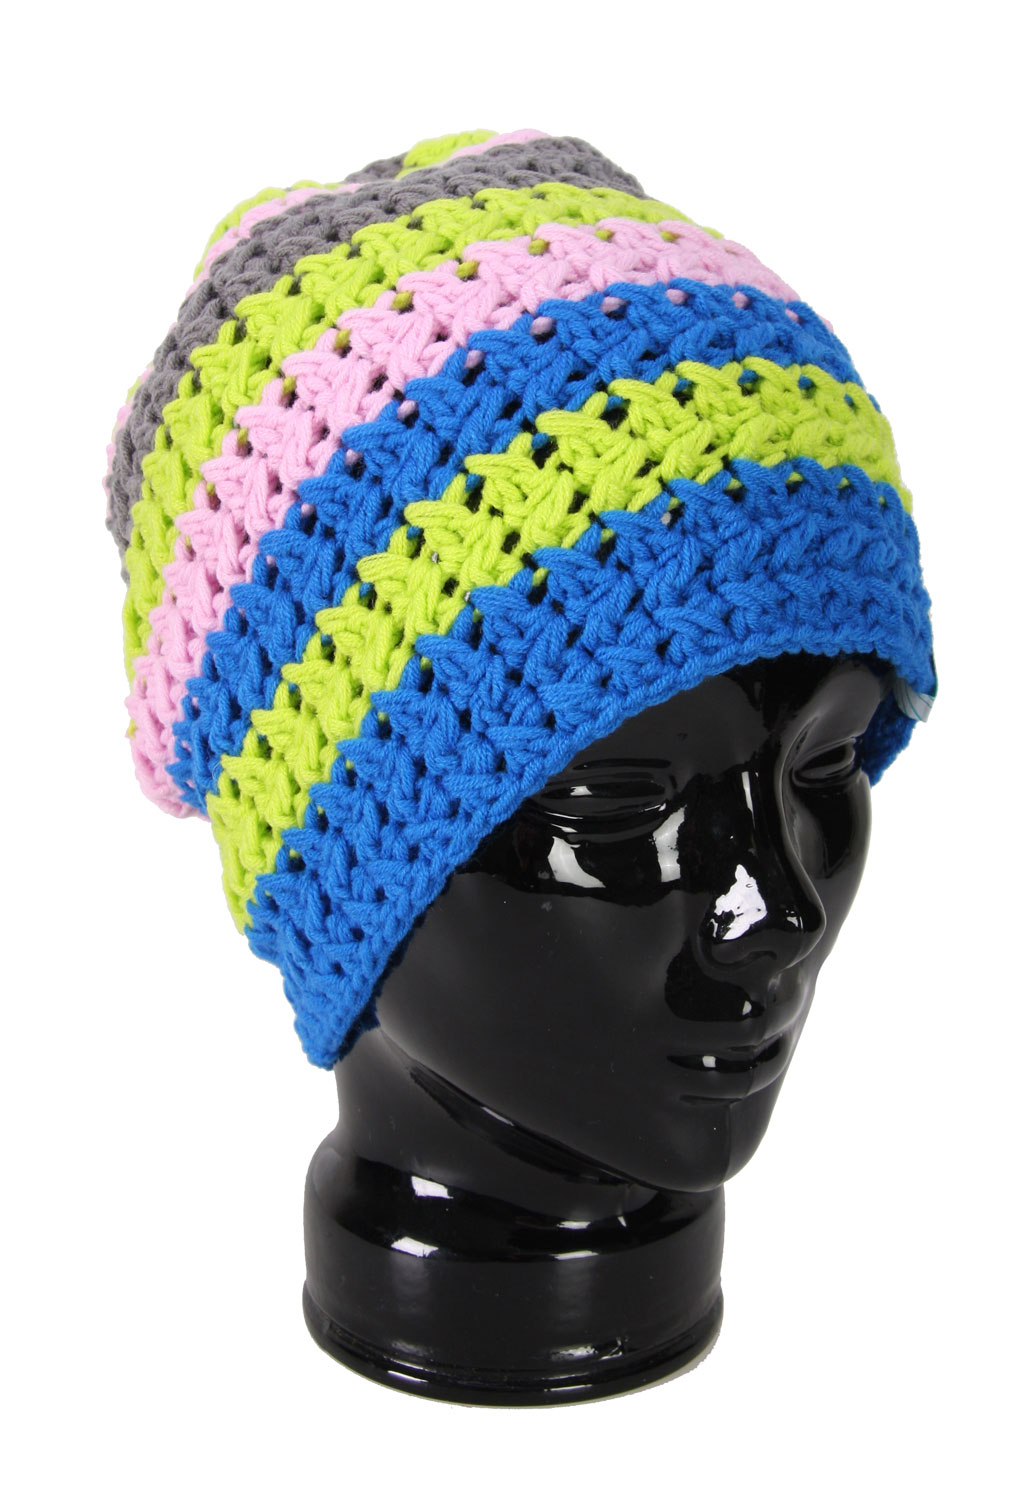 The Forum Spinster Beanie won't just keep your head warm, it will keep you in style too! This machine knit cap is made from 85% acrylic and 15% wool and features large crochet weave stripes to set this hat apart from all the rest. Say goodbye to your old boring winter hat and hello to this funky, fresh design from Forum. The Forum Spinster Beanie Green is a high quality, great looking hat at any even better price!Key Features of The Forum Spinster Women's Beanie: Machine Knit 85% Acrylic / 15% Wool Crochet Weave Stripes - $11.87